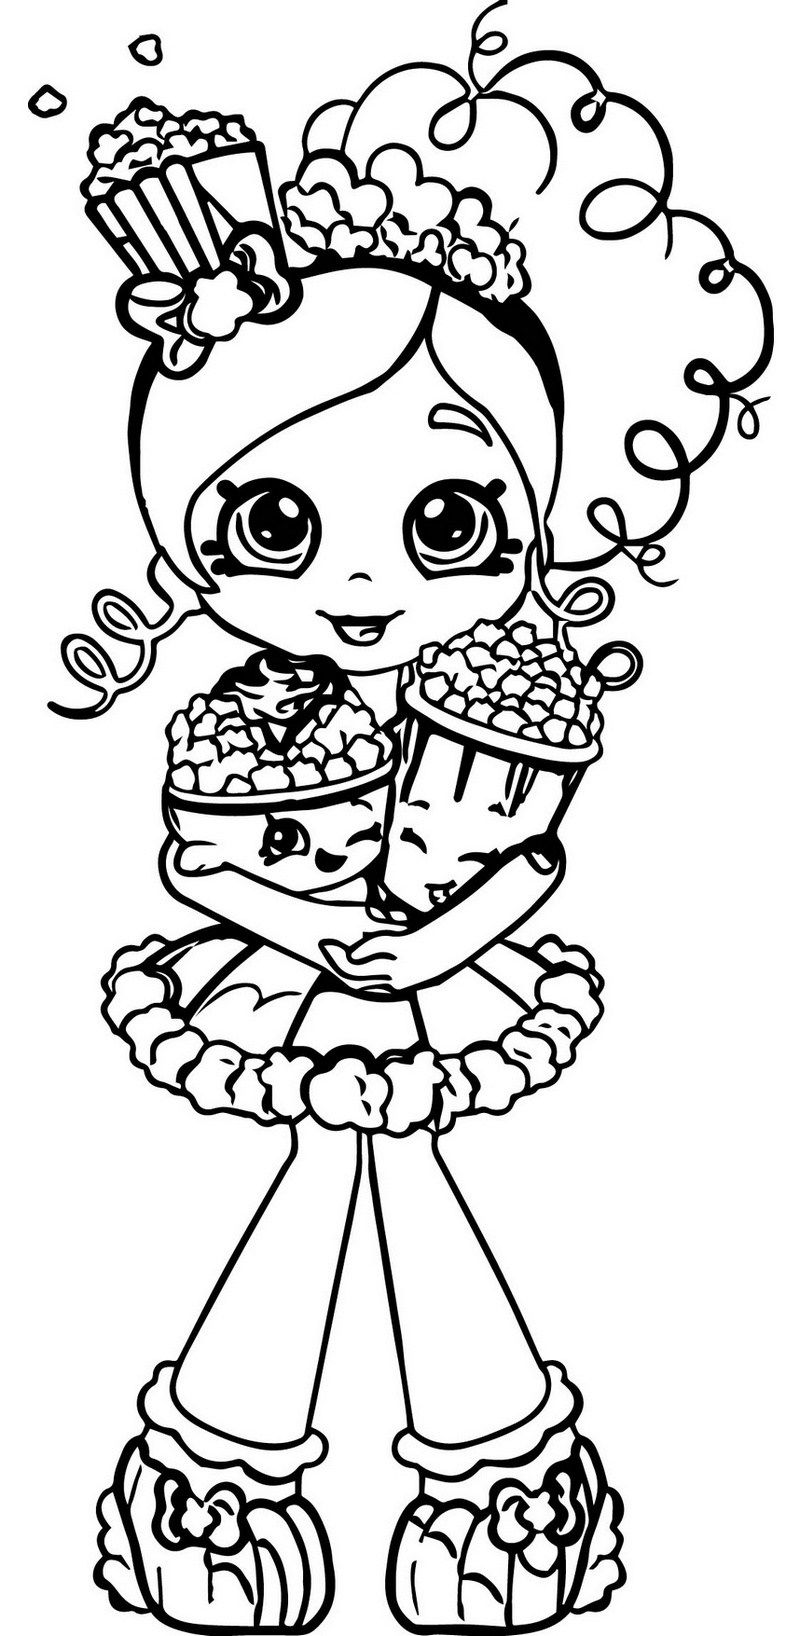 Shopkins Popcorn Coloring And Activity Page Shopkins Colouring Pages Shopkin Coloring Pages Coloring Pages For Girls